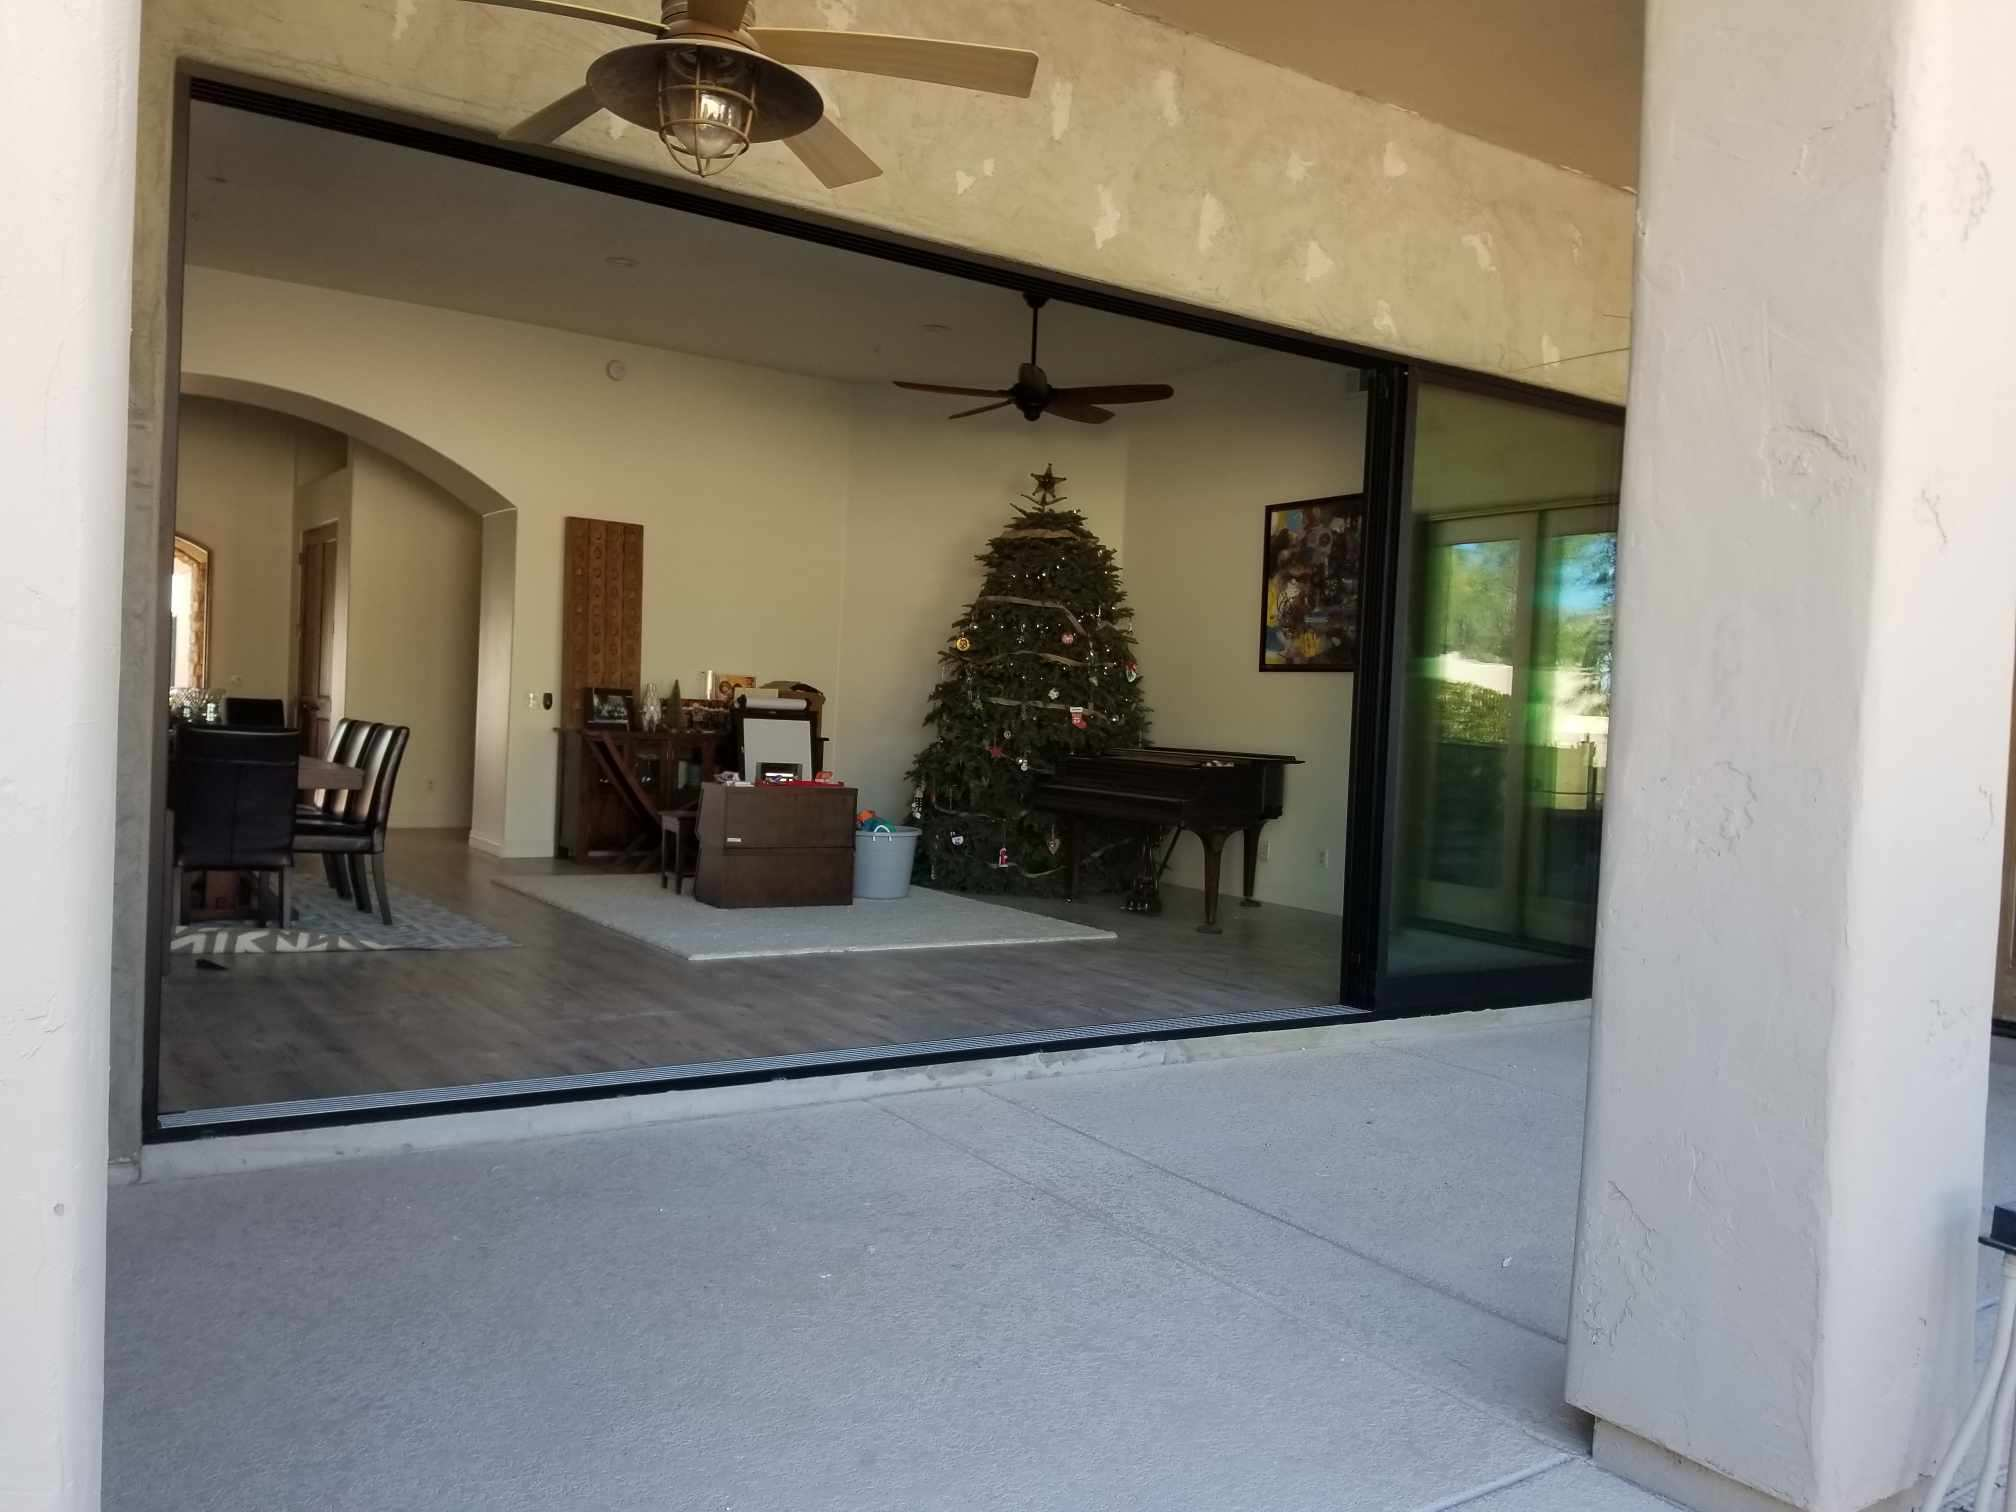 Arizona Window and Door in Scottsdale and Tucson showing large panel doors open